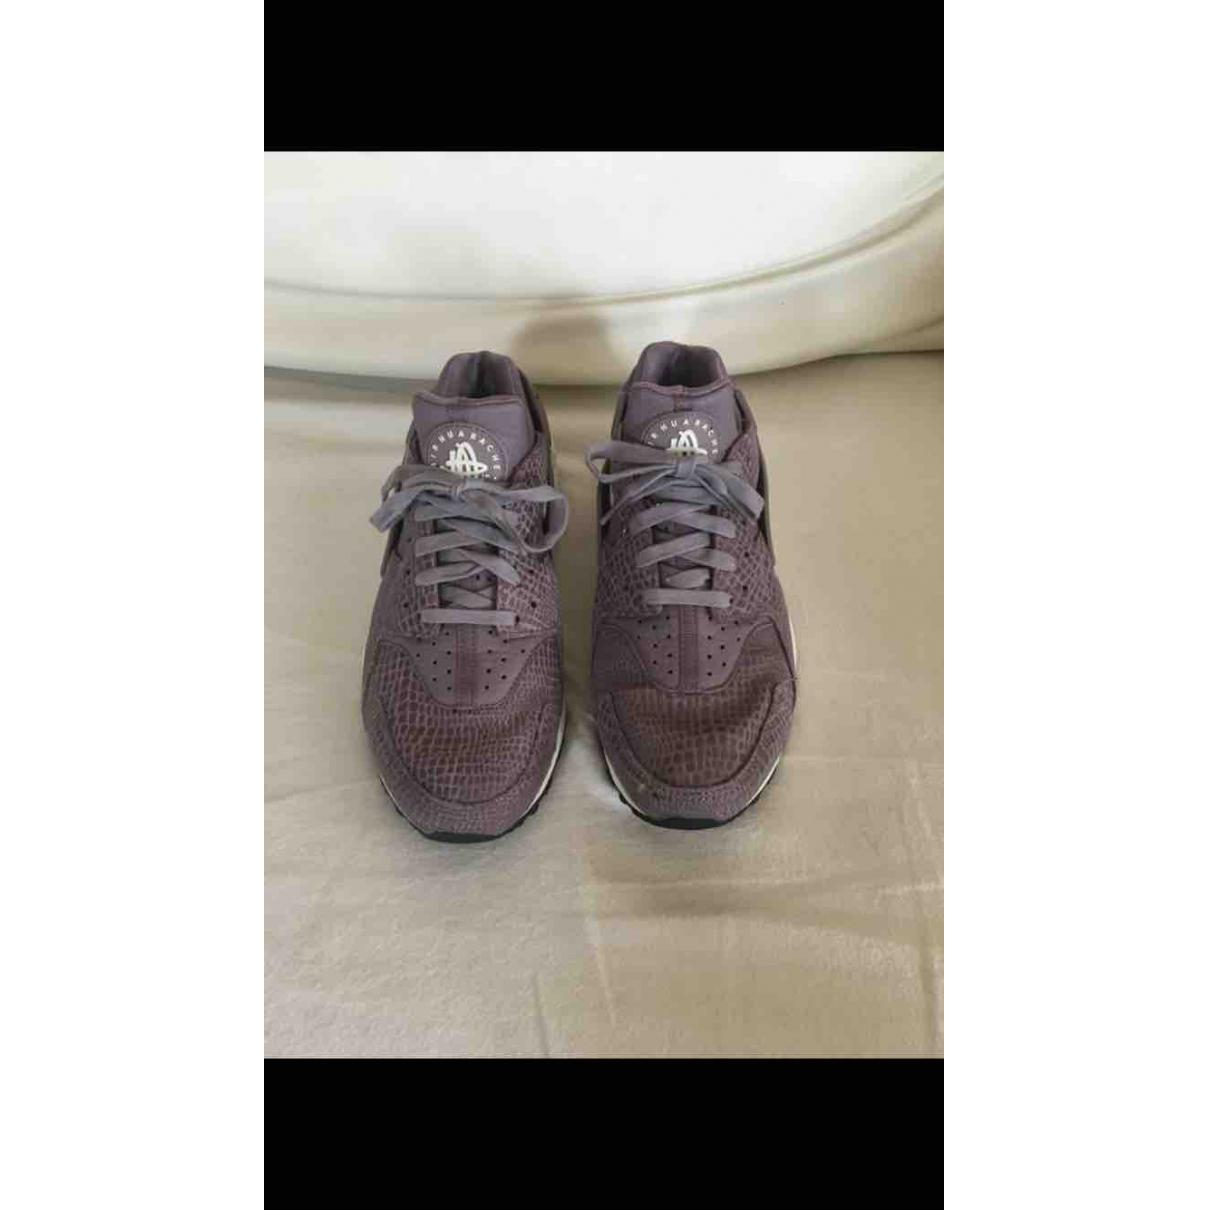 cheap for discount be46e 39541 best price nike pre owned huarache purple leather trainers lyst. view  fullscreen 2685e 5b708